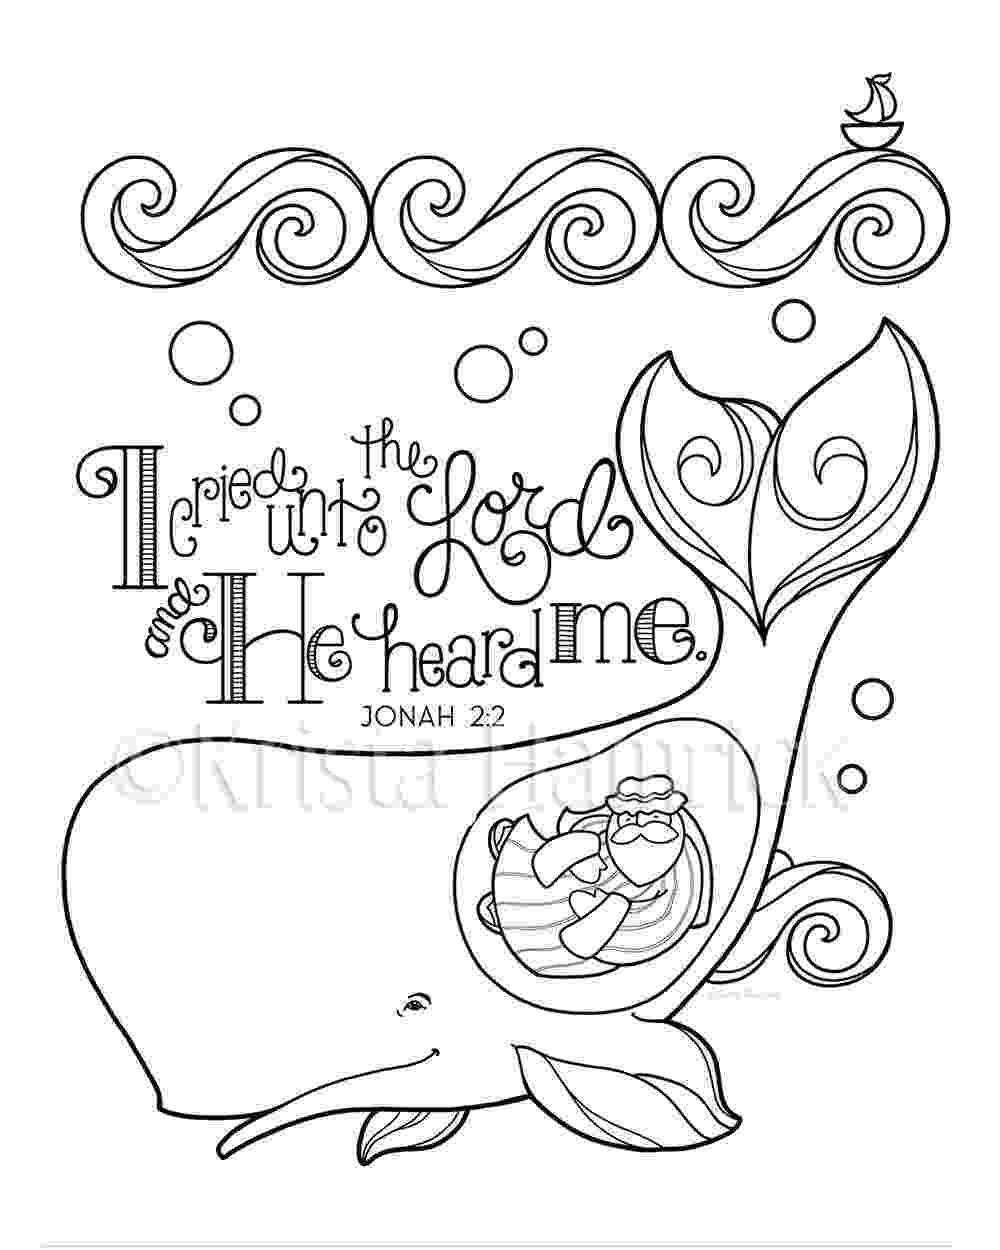 jonah and the whale coloring page jonah coloring page free download sunday school coloring and whale page coloring the jonah